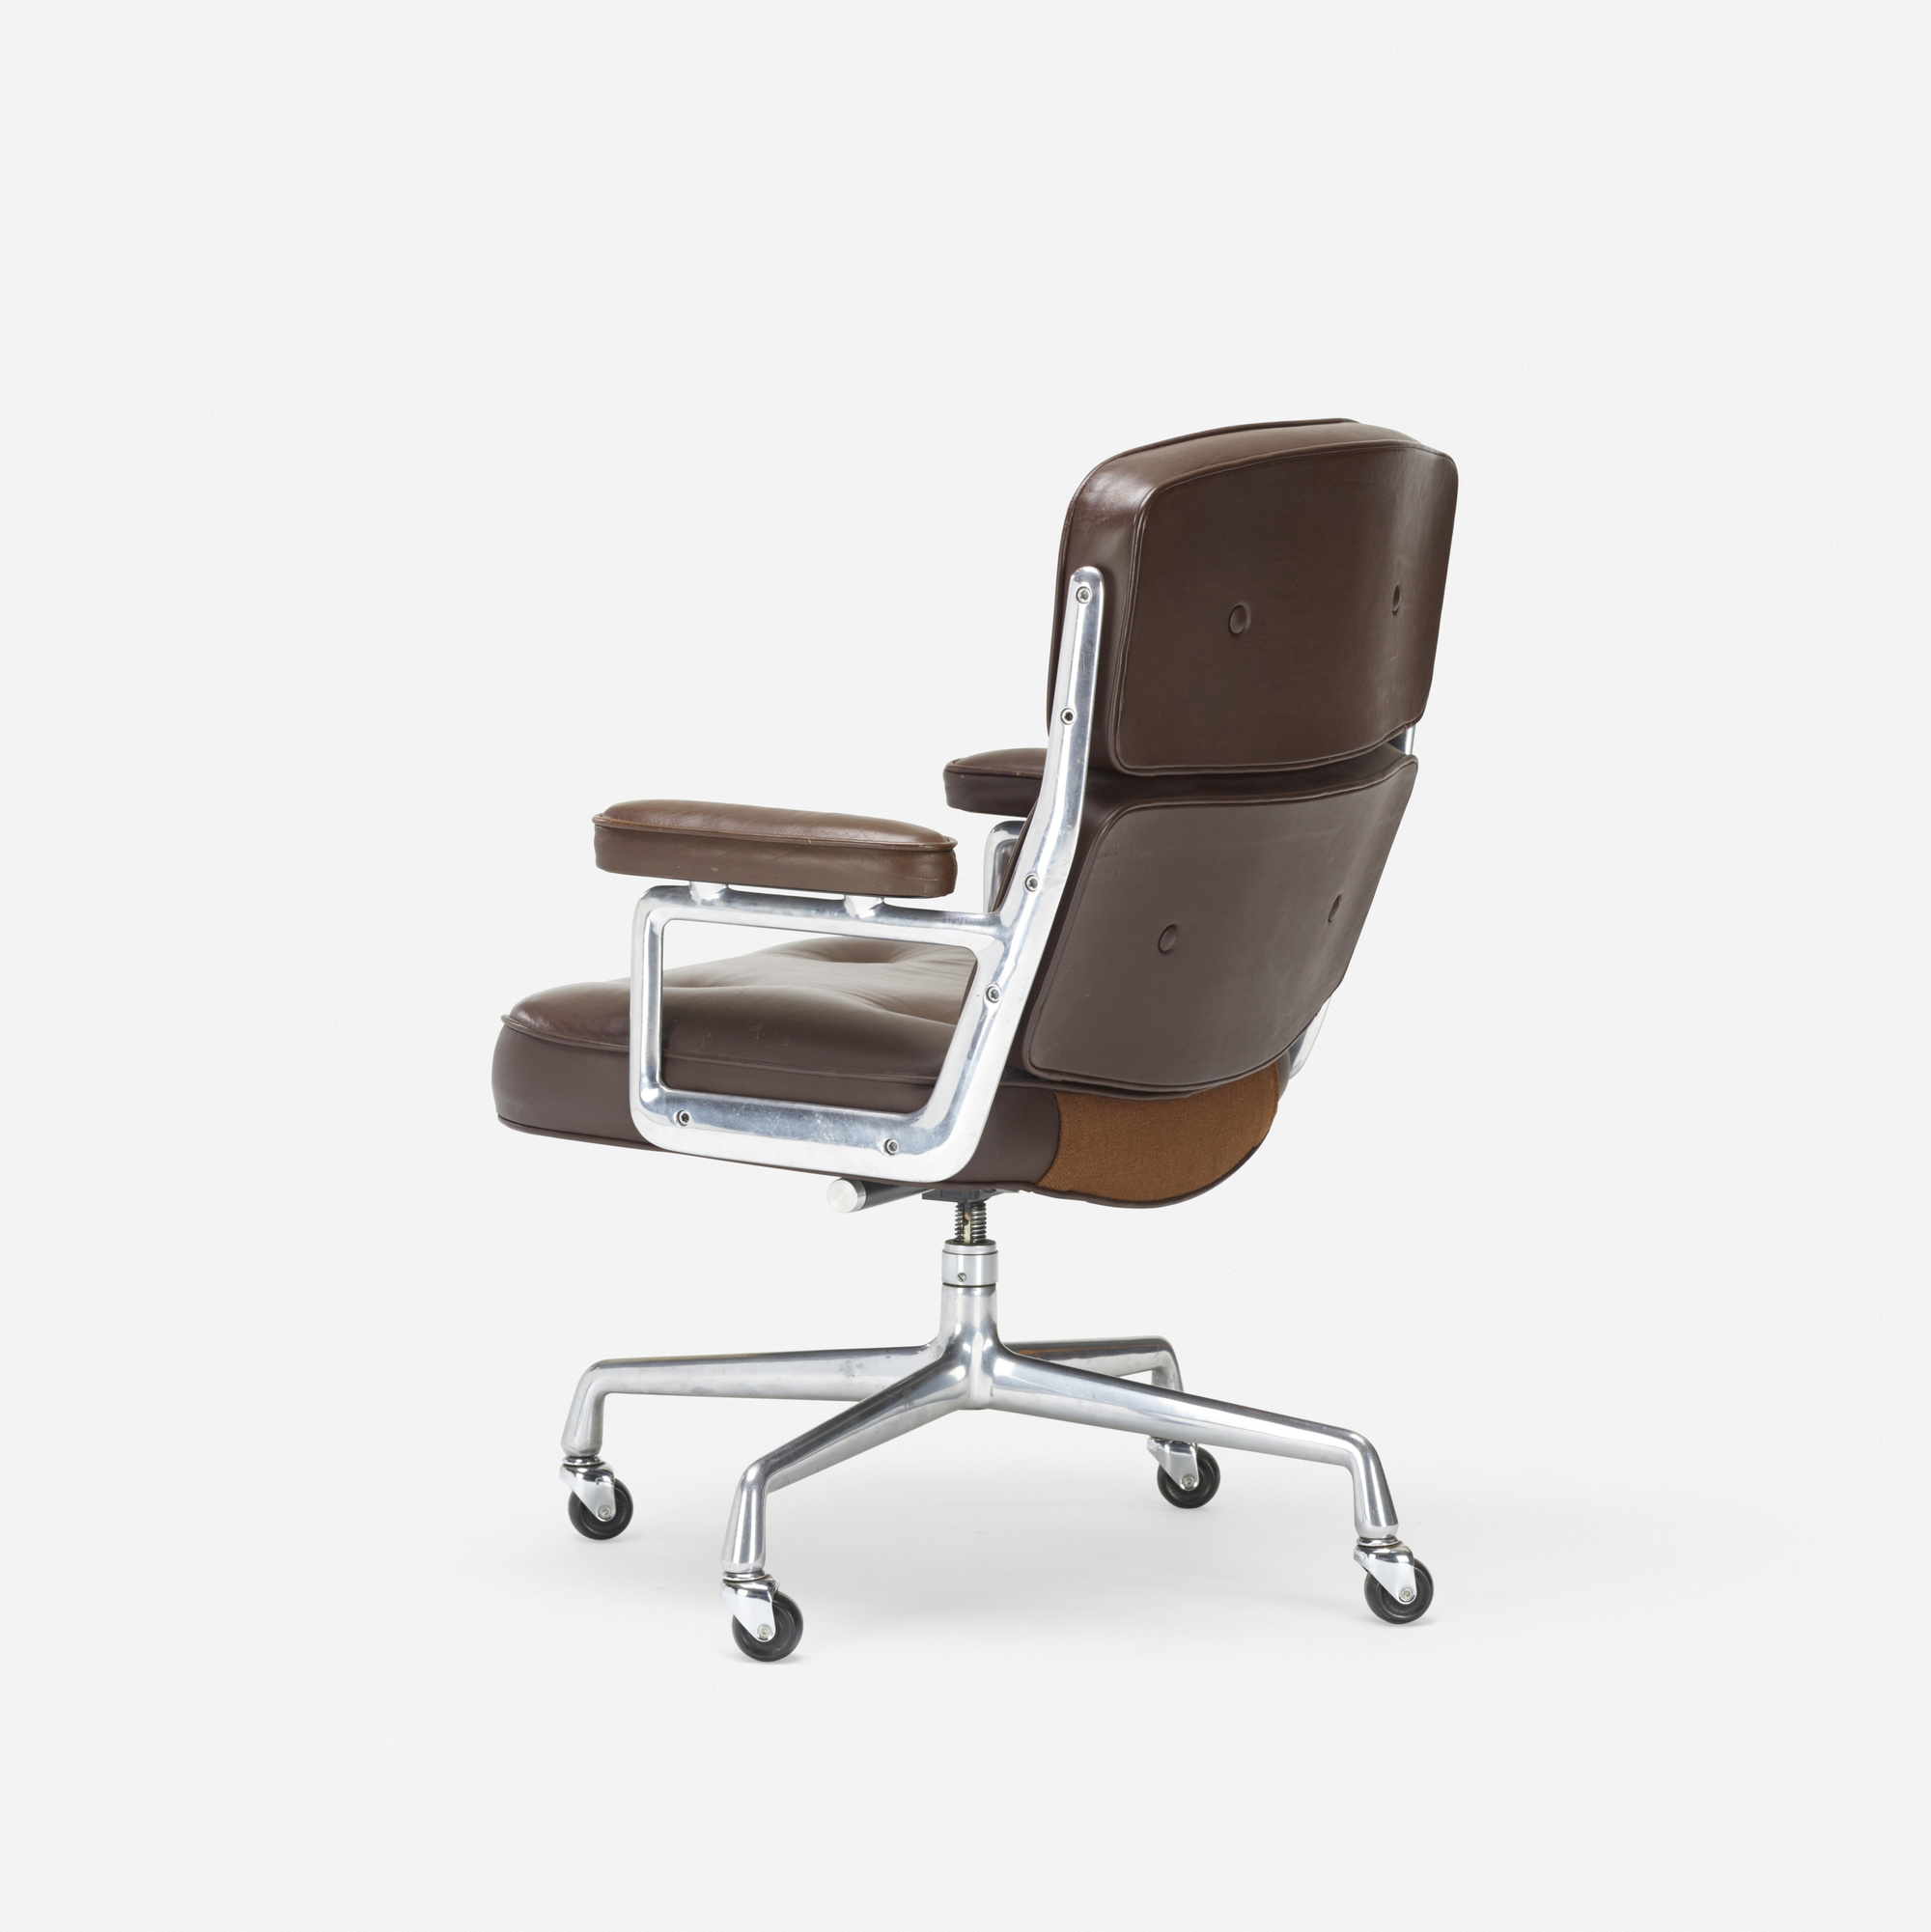 258: Charles and Ray Eames / Time Life armchair (2 of 3)